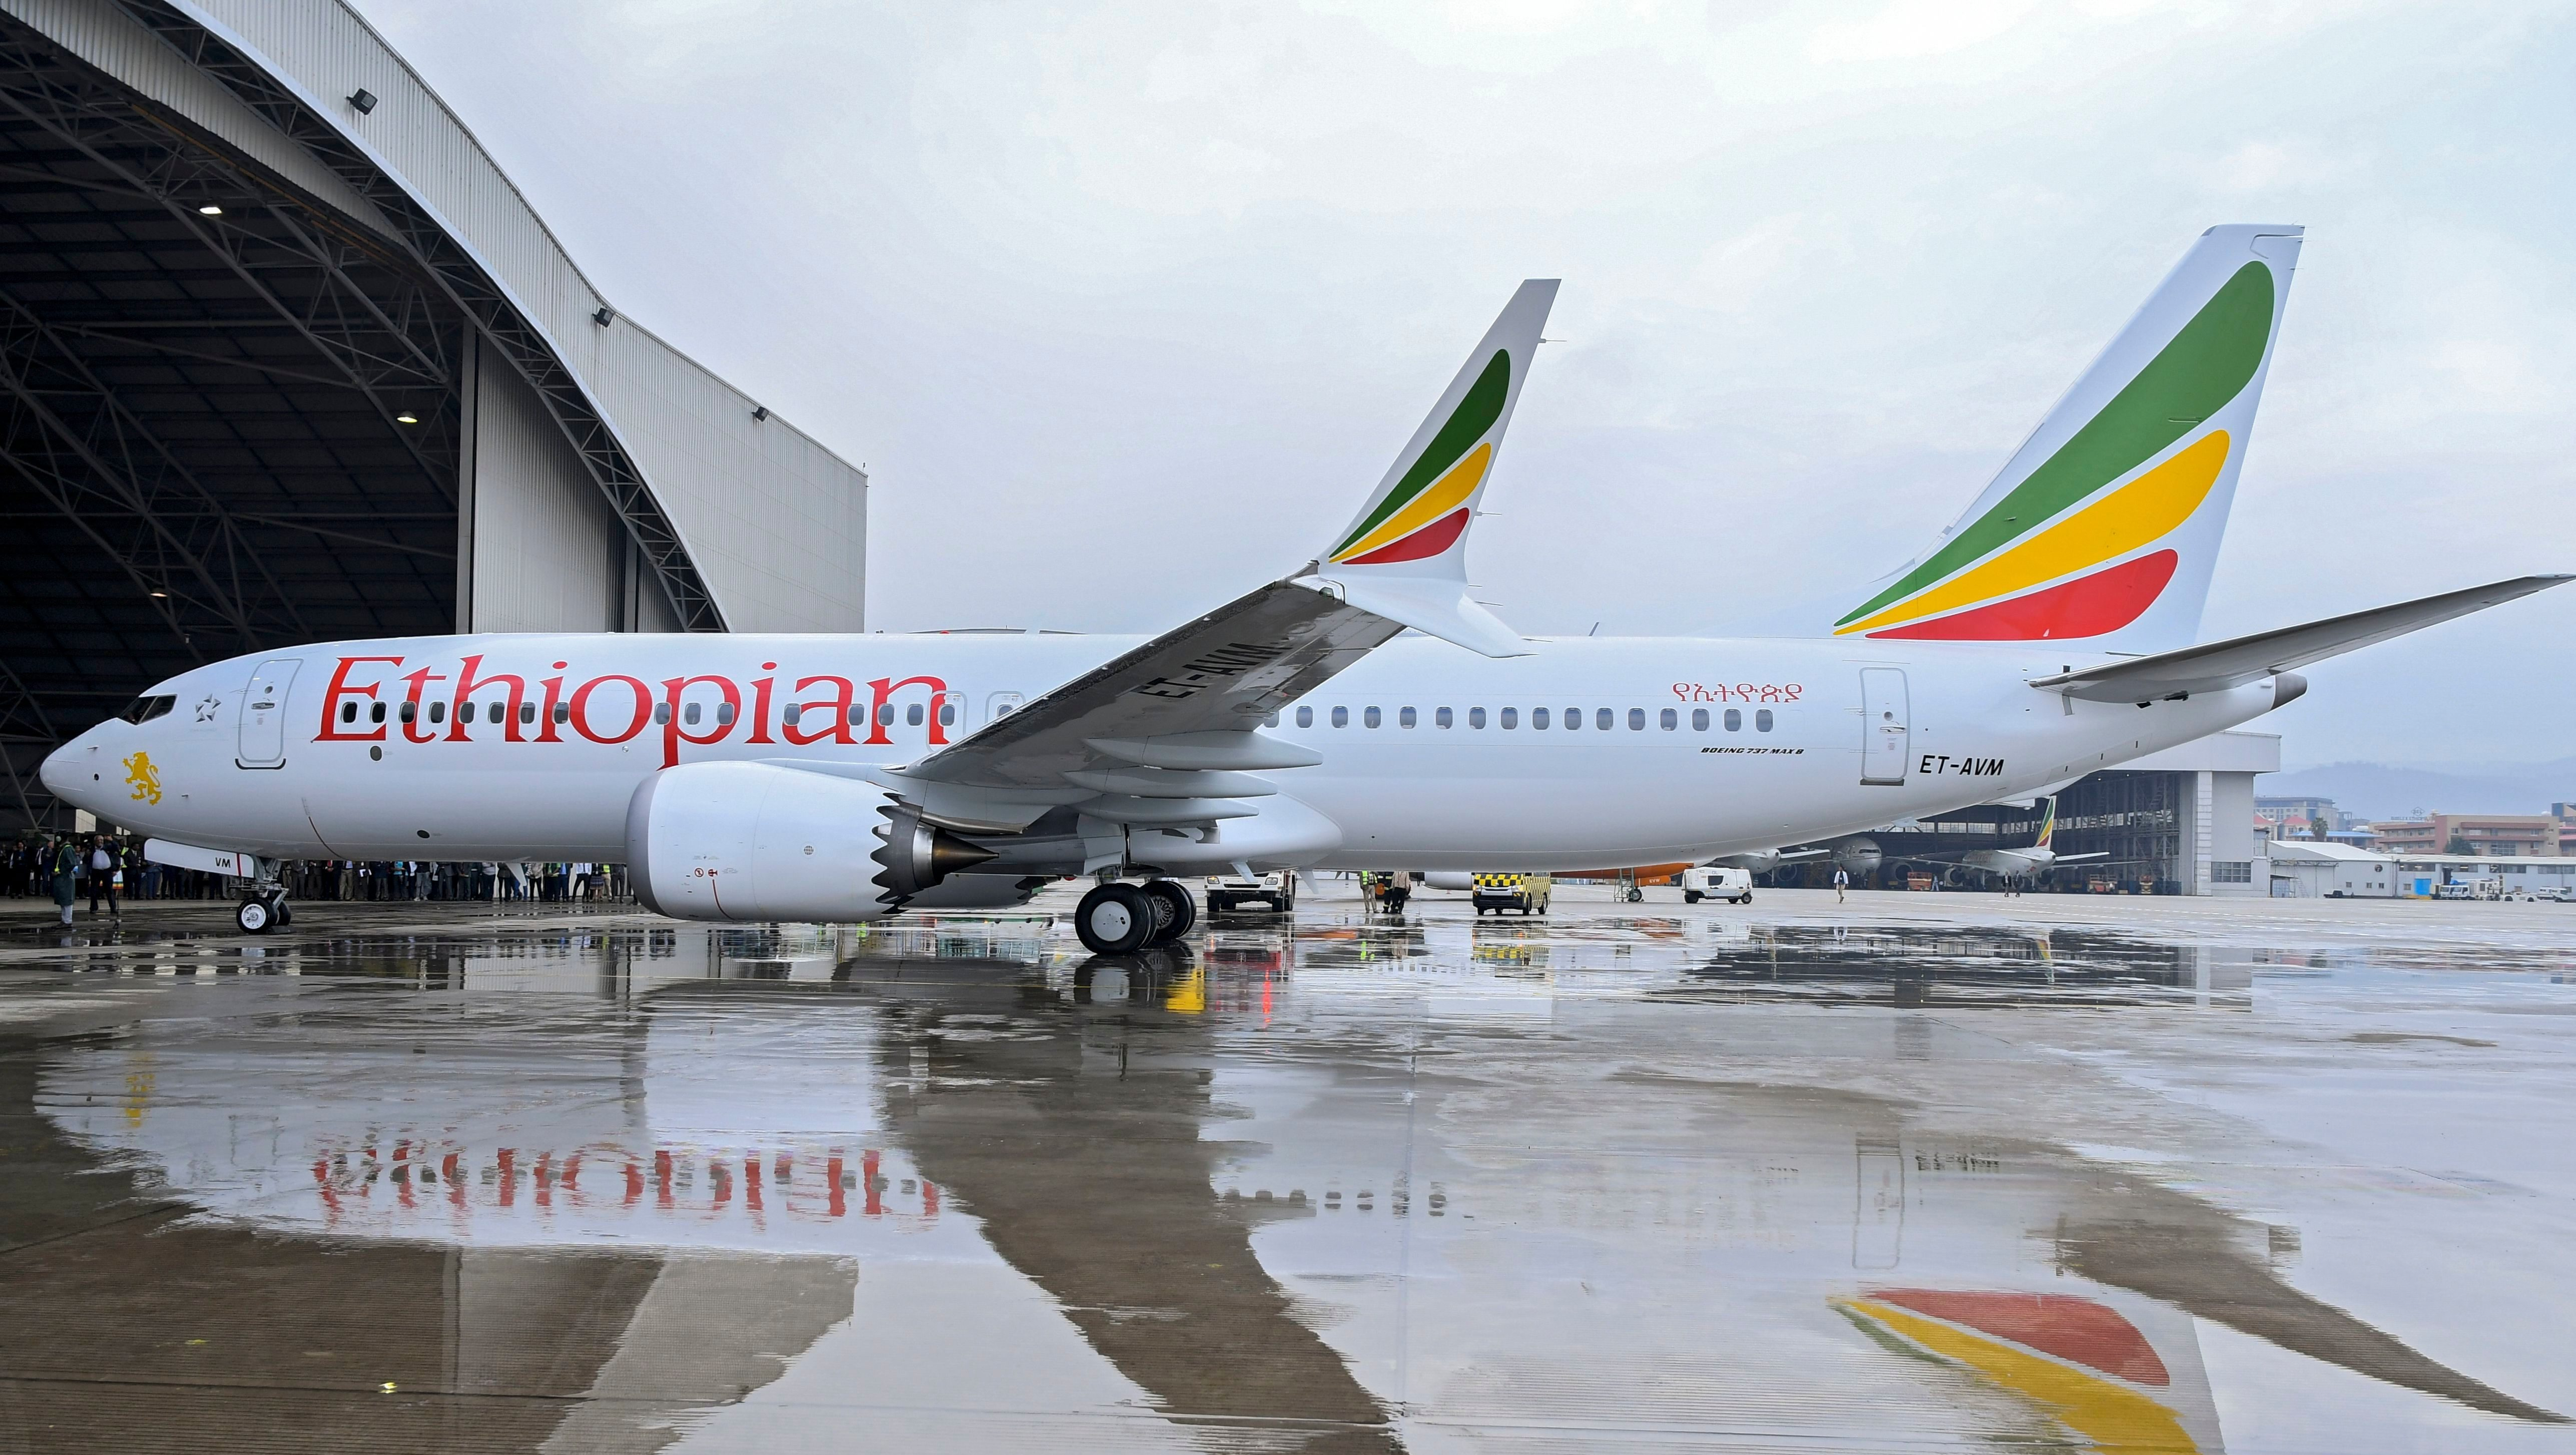 Ethiopian Airlines Boeing 737 Max 8 (ET-AVM), the same type of aircraft that crashed in Ethiopia on 10 March 2019, is seen at Bole International Airport in Addis Ababa, Ethiopia, when it was first delivered to Ethiopia on 02 July 2018 (issued 10 March 2019). Ethiopian Airlines Boeing 737 en route to Nairobi, Kenya, crashed near Bishoftu, some 50km outside of the capital Addis Ababa, Ethiopia, on 10 March 2019. All passengers onboard the scheduled flight ET 302 carrying 149 passengers and 8 crew members, have died, the airlines says. Ethiopian Airlines plane en route from Addis Ababa to Nairobi crashed, Ethiopia - 02 Jul 2018